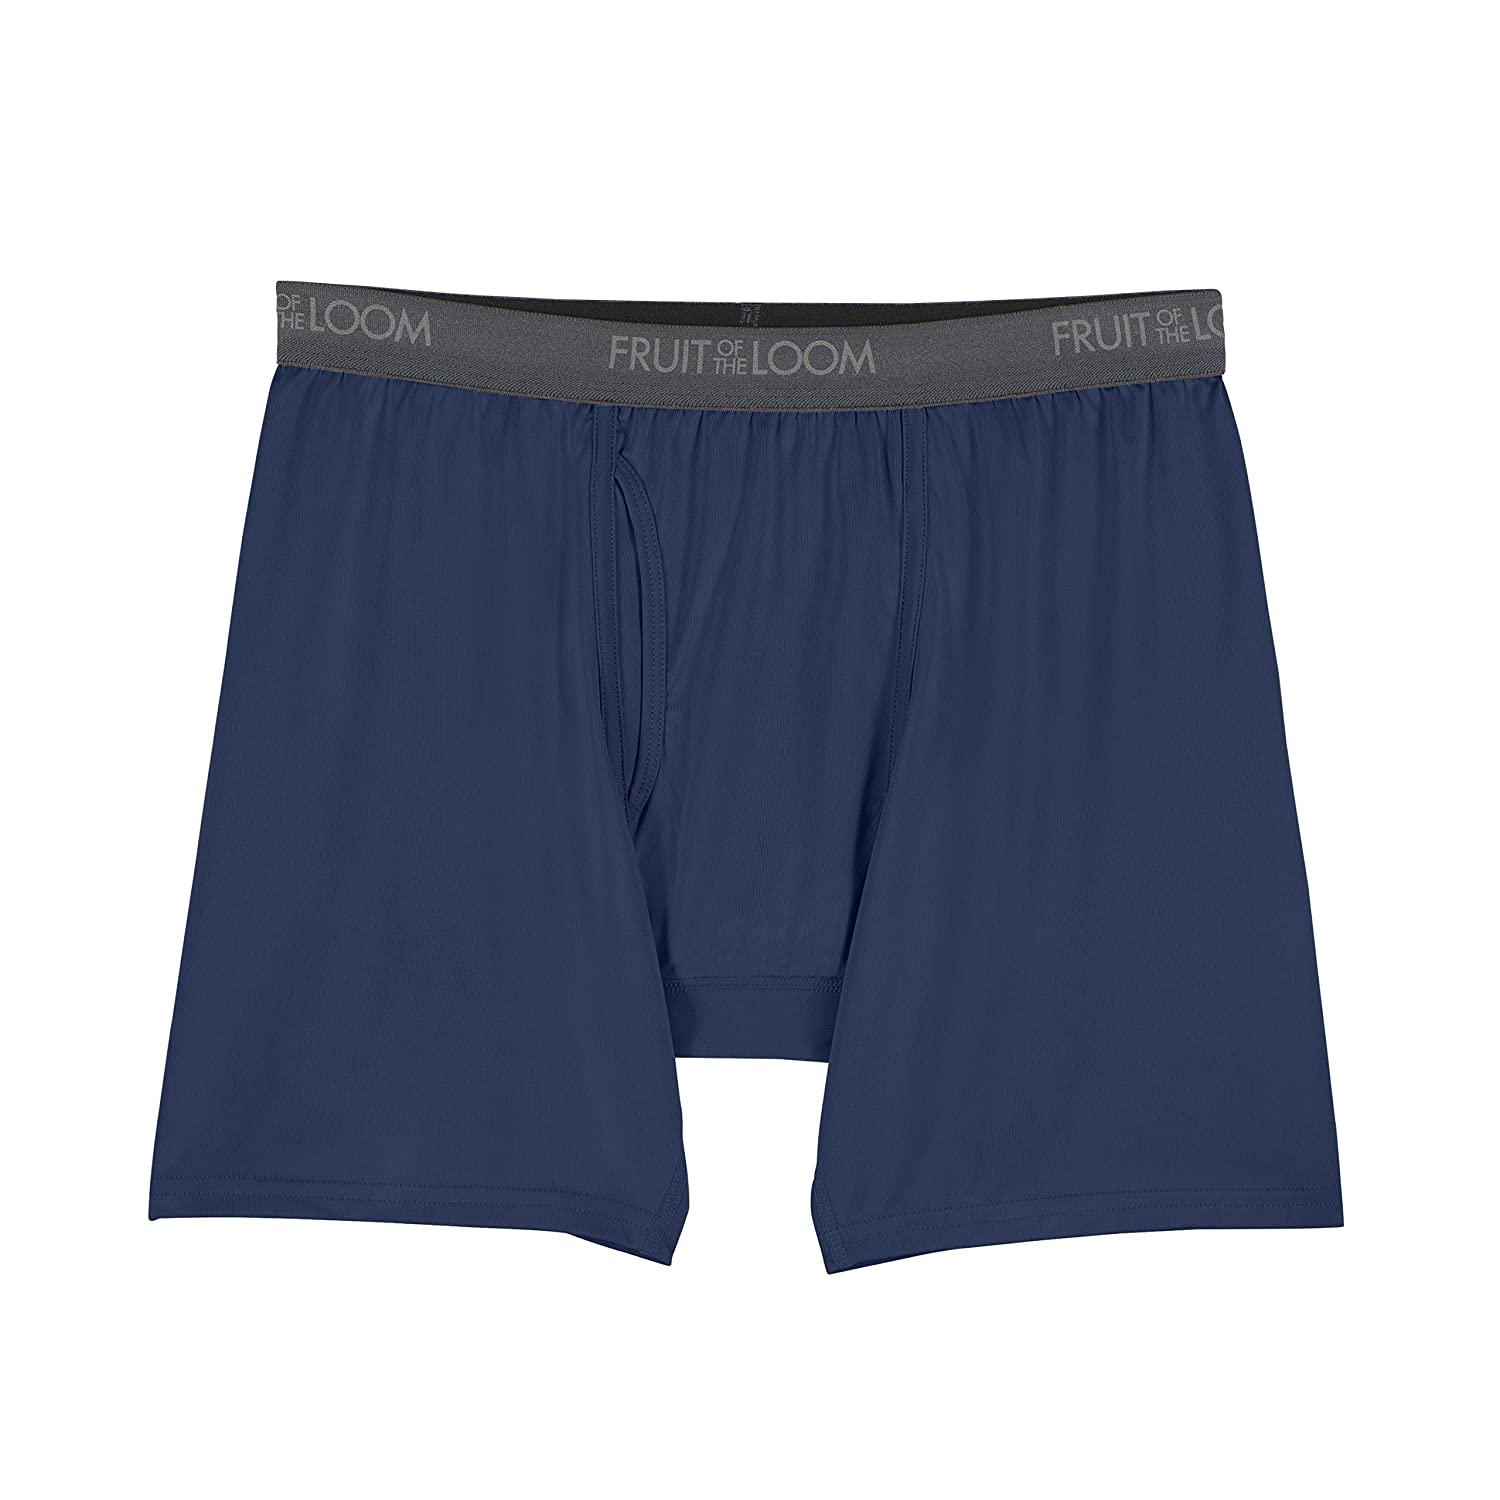 Fruit of the Loom Mens Micro-Stretch Boxer Briefs